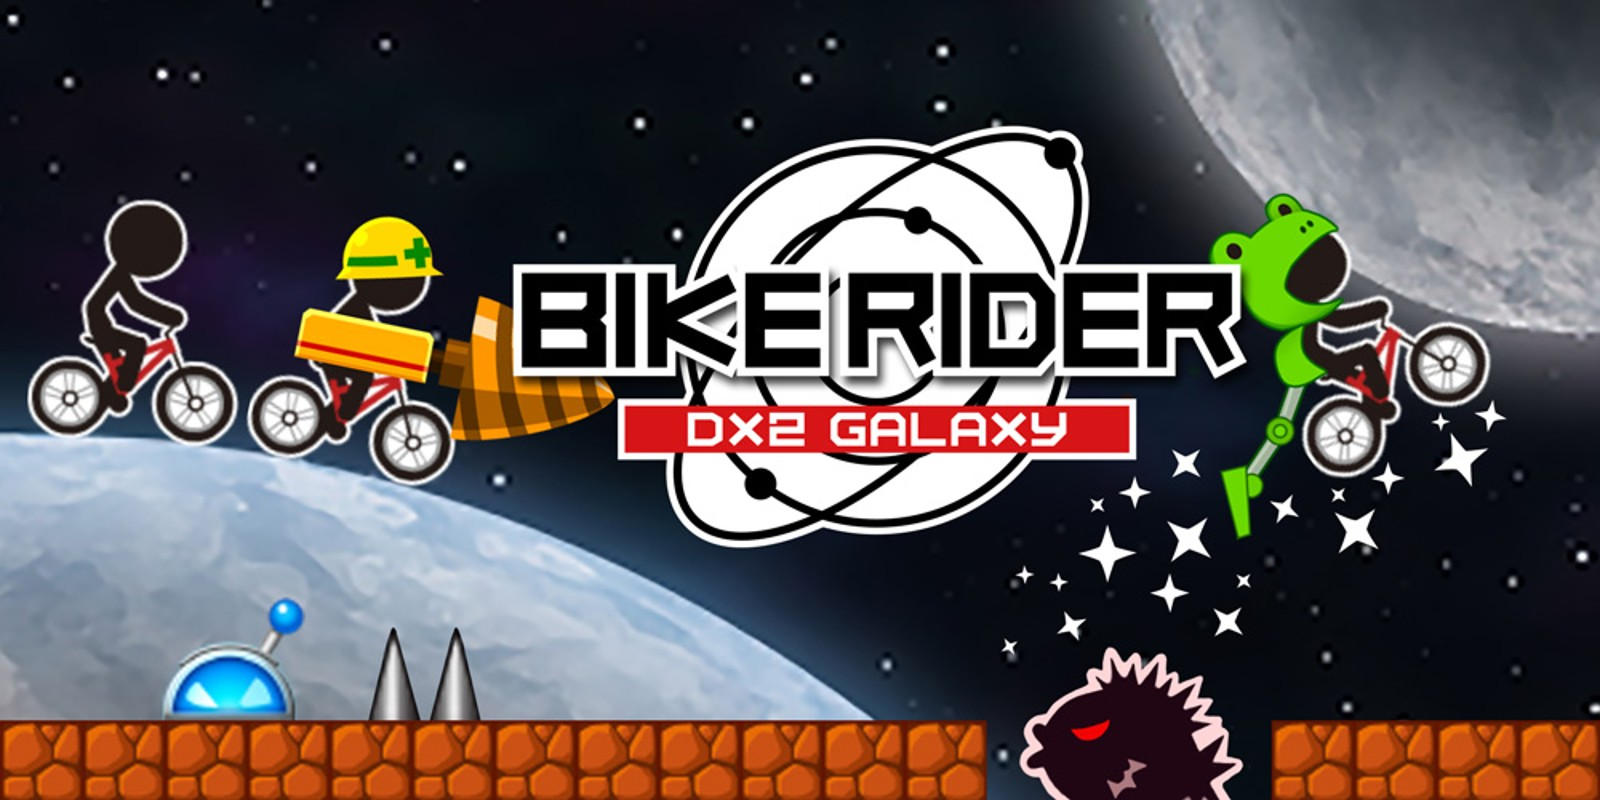 BIKE RIDER DX2: GALAXY